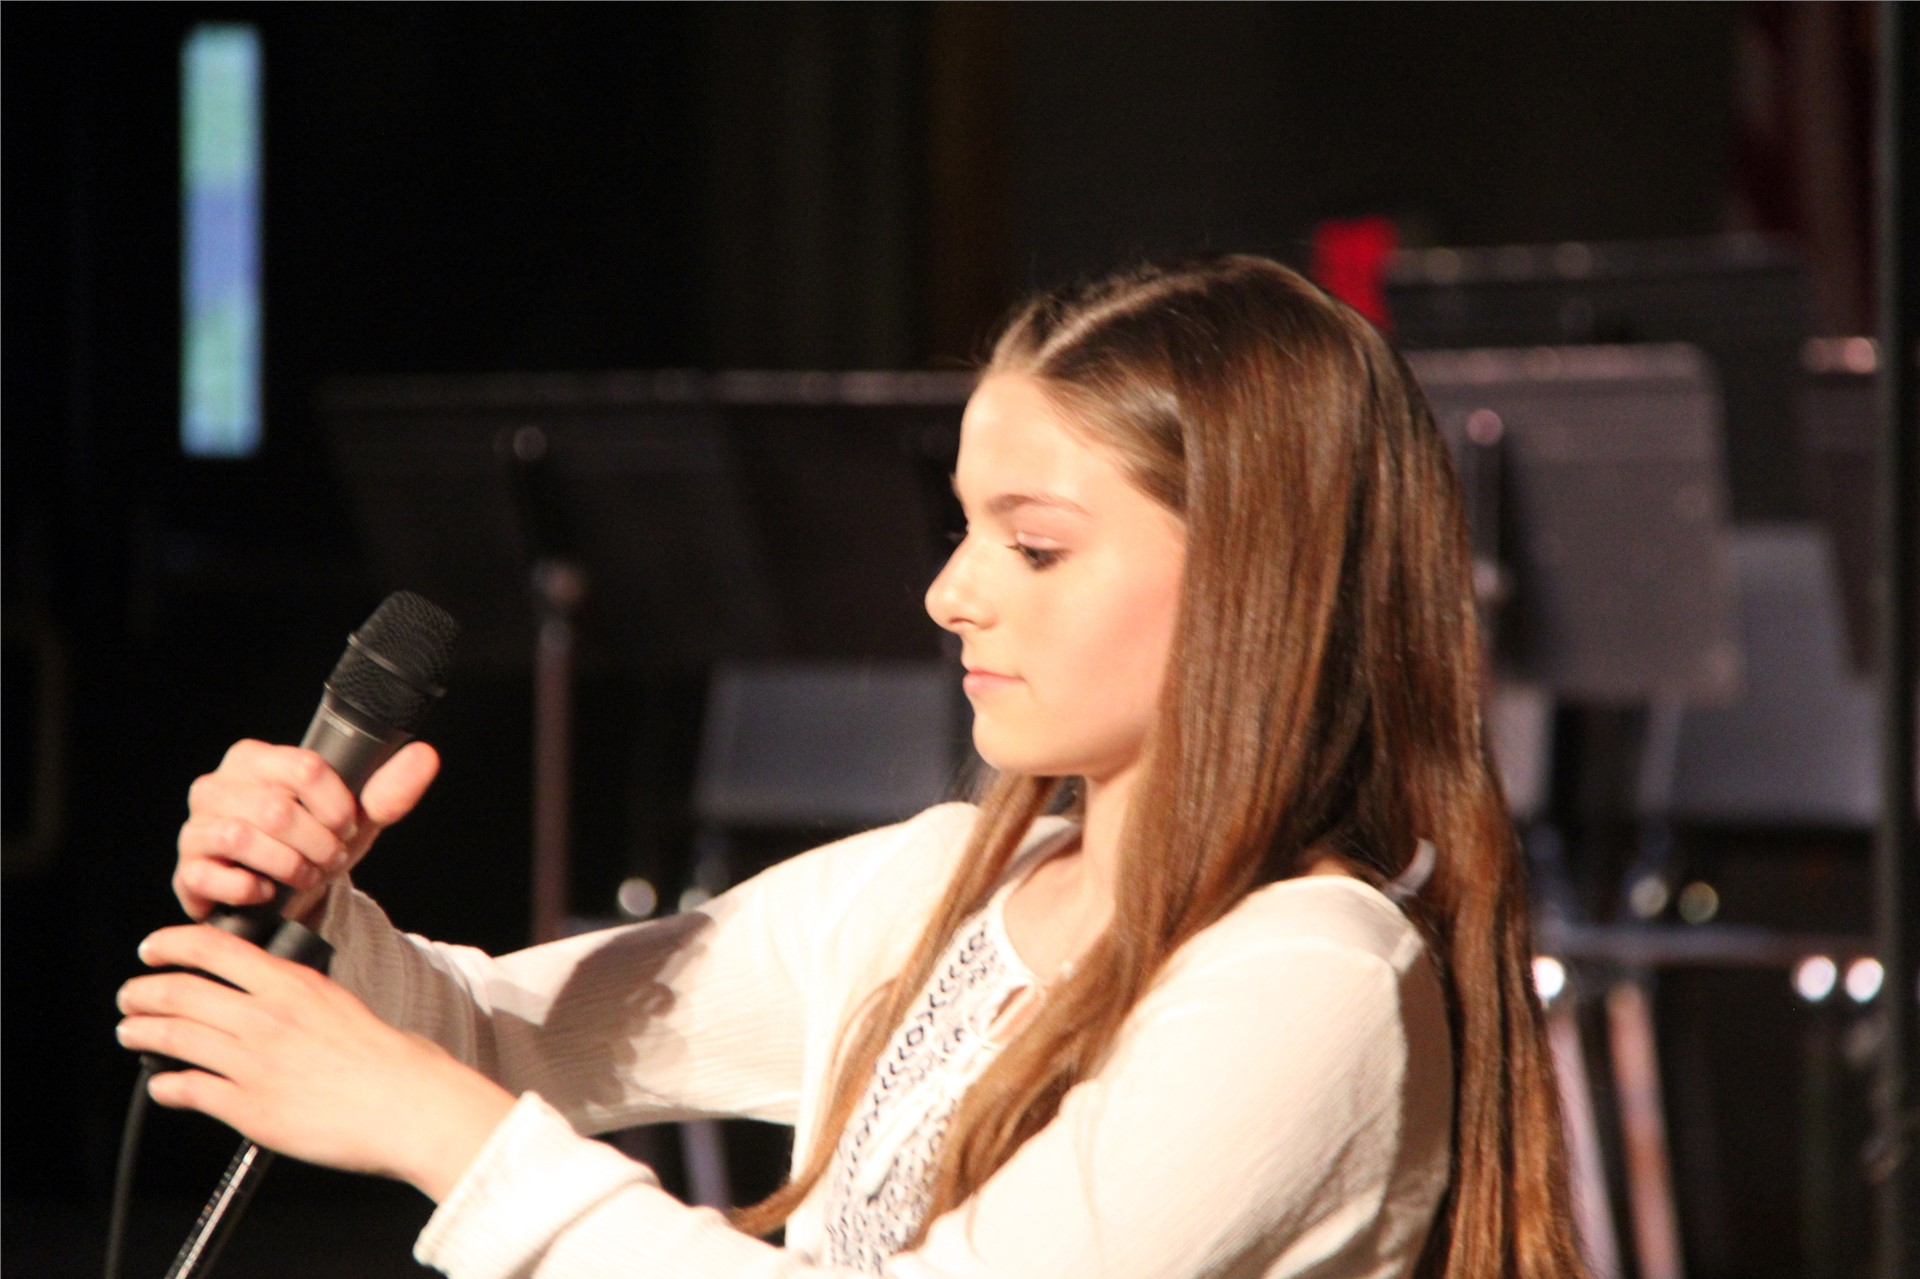 student holding microphone